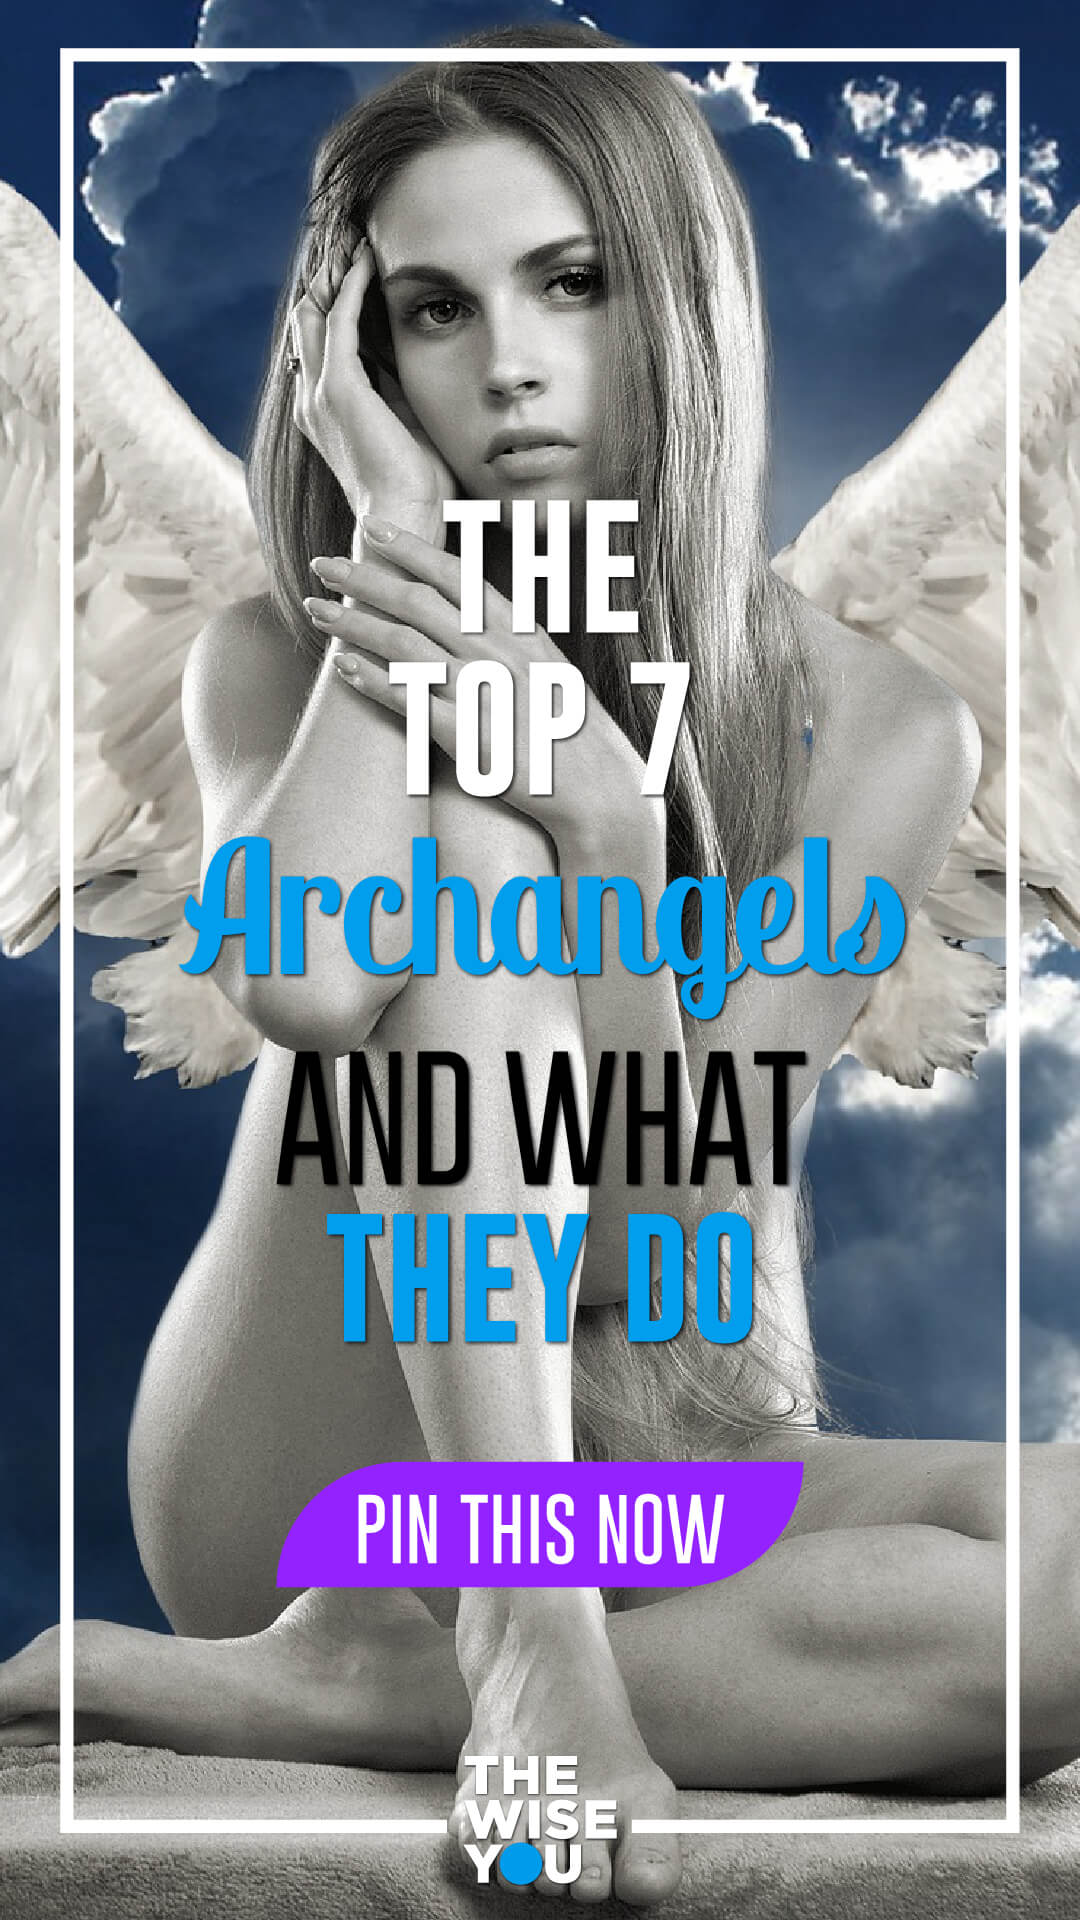 The Top 7 Archangels and What They Do